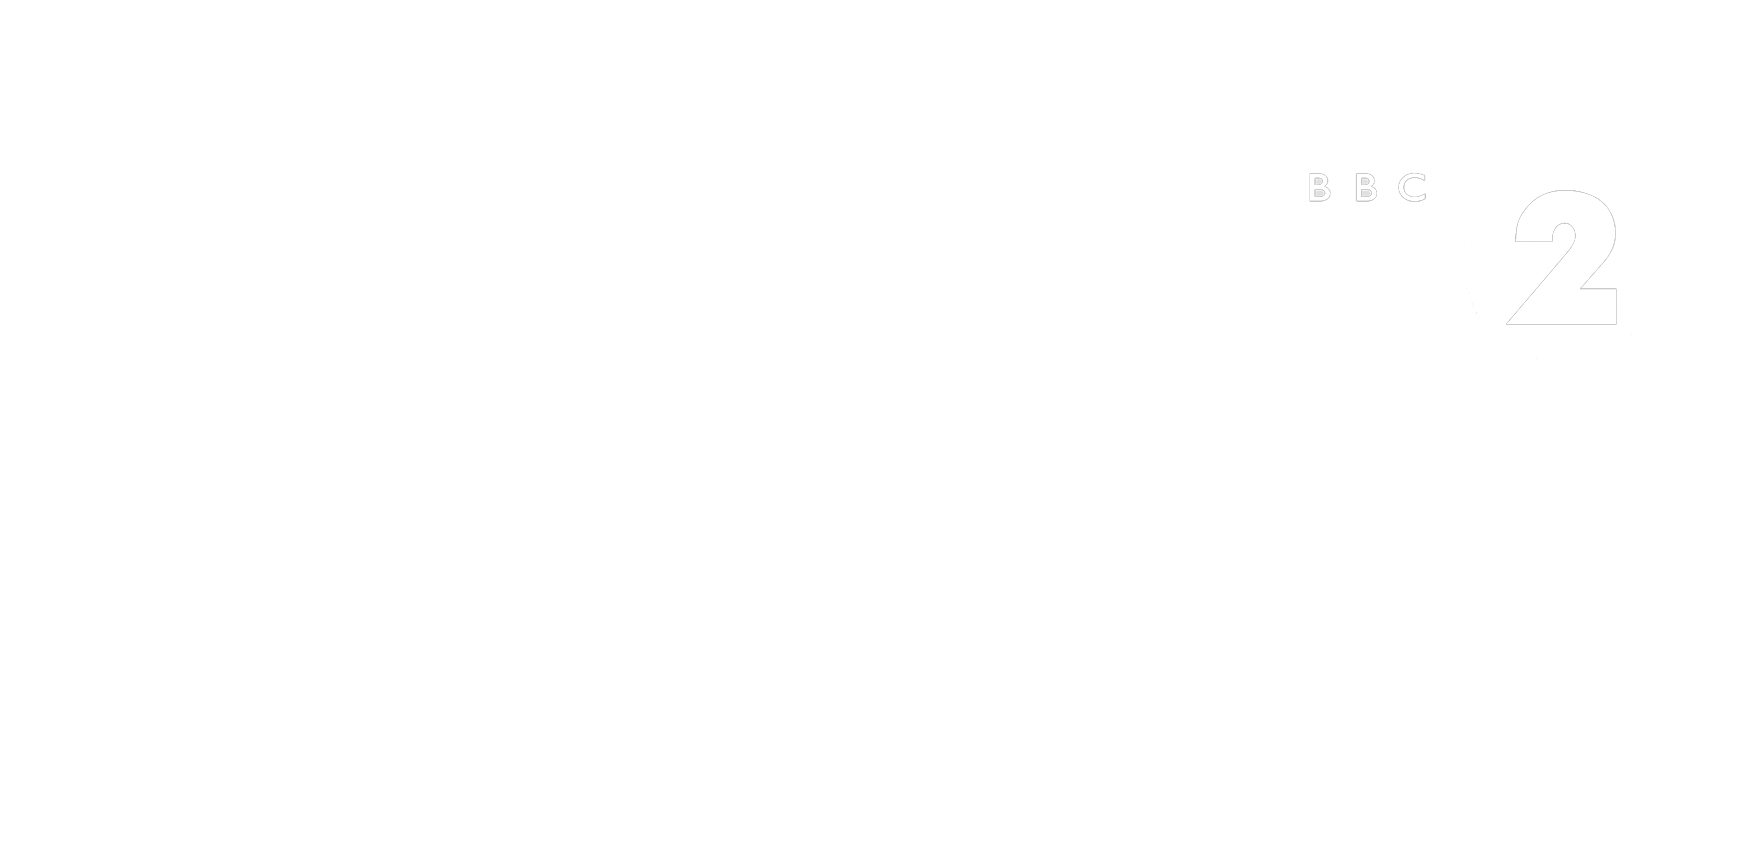 Radio 2 Folk Awards Nominee